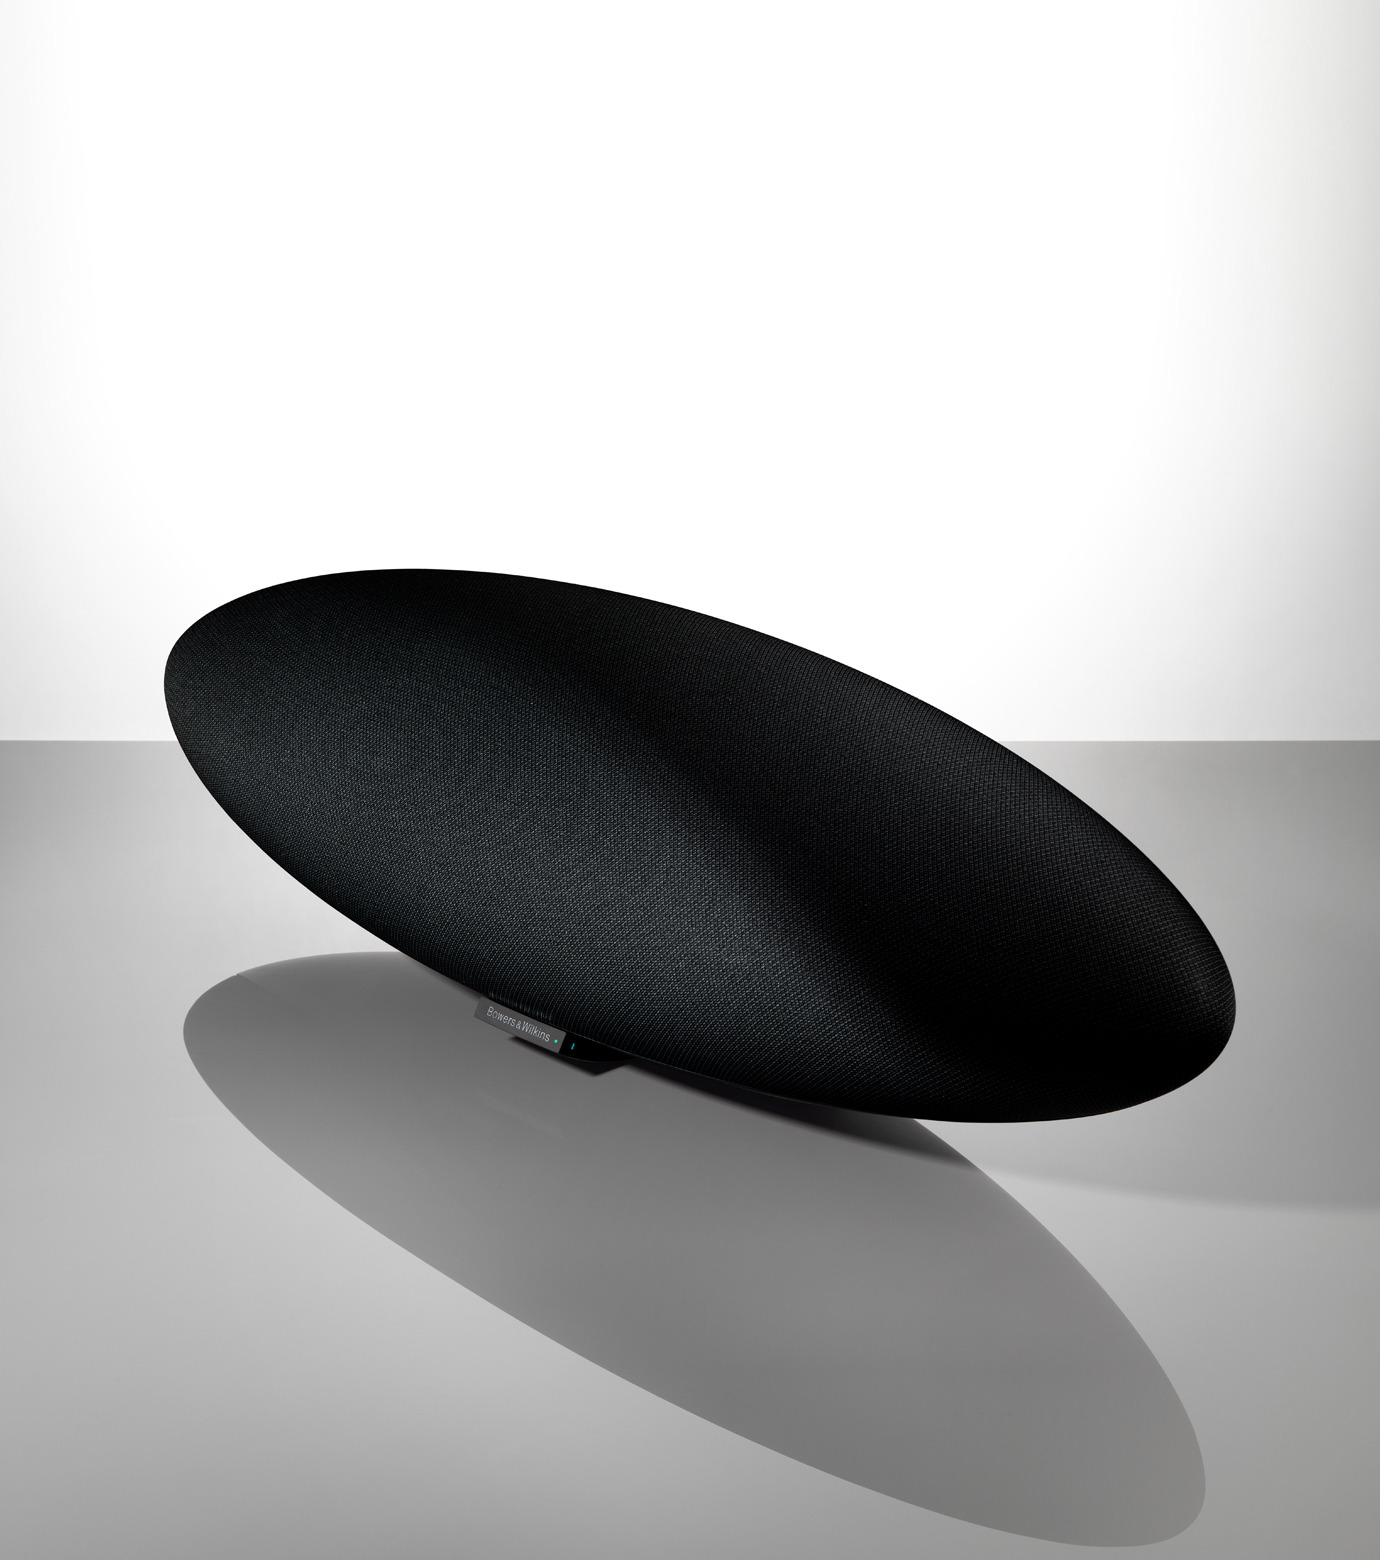 Bowers&Wilkins()のZeppelin Wireless-BLACK(スピーカー/speaker)-BW-zeppelin-13 拡大詳細画像2